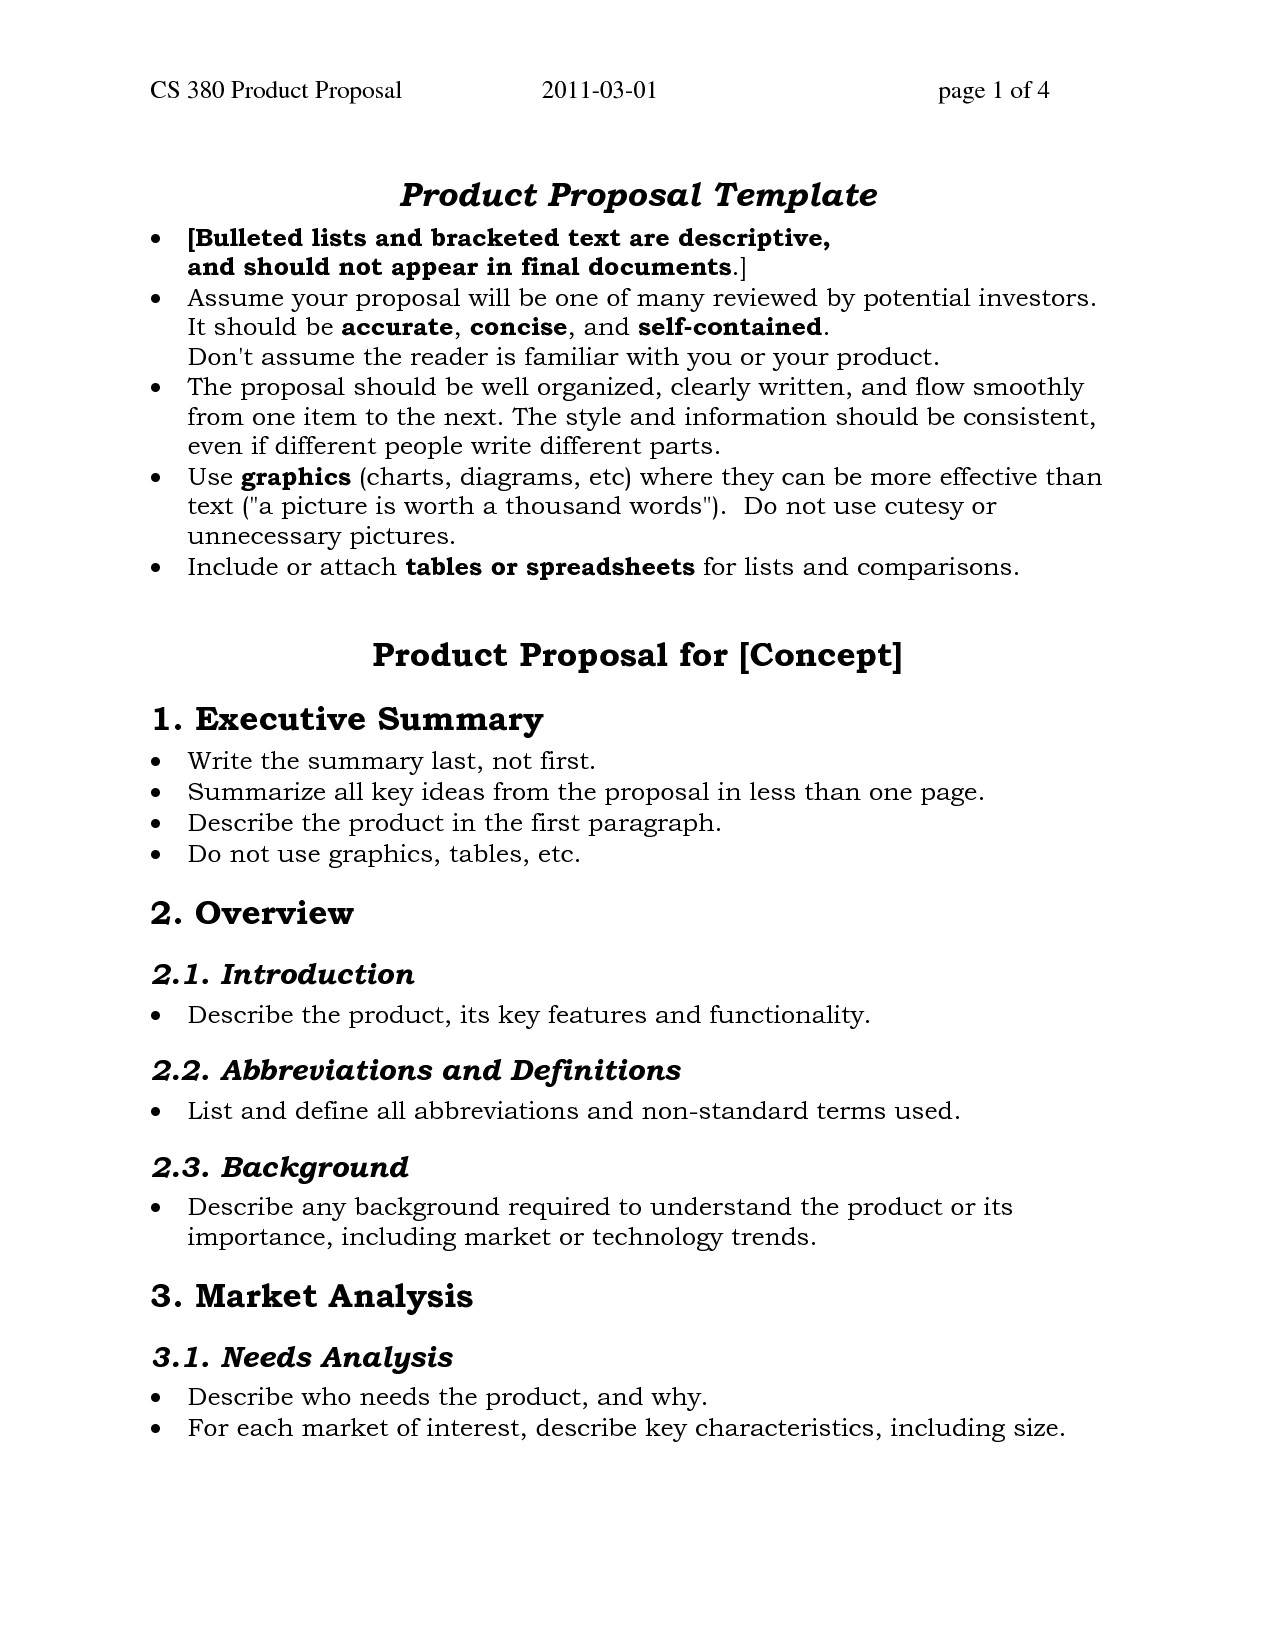 One Page Proposal Template Research Proposal 1 Page Buying Essay the University